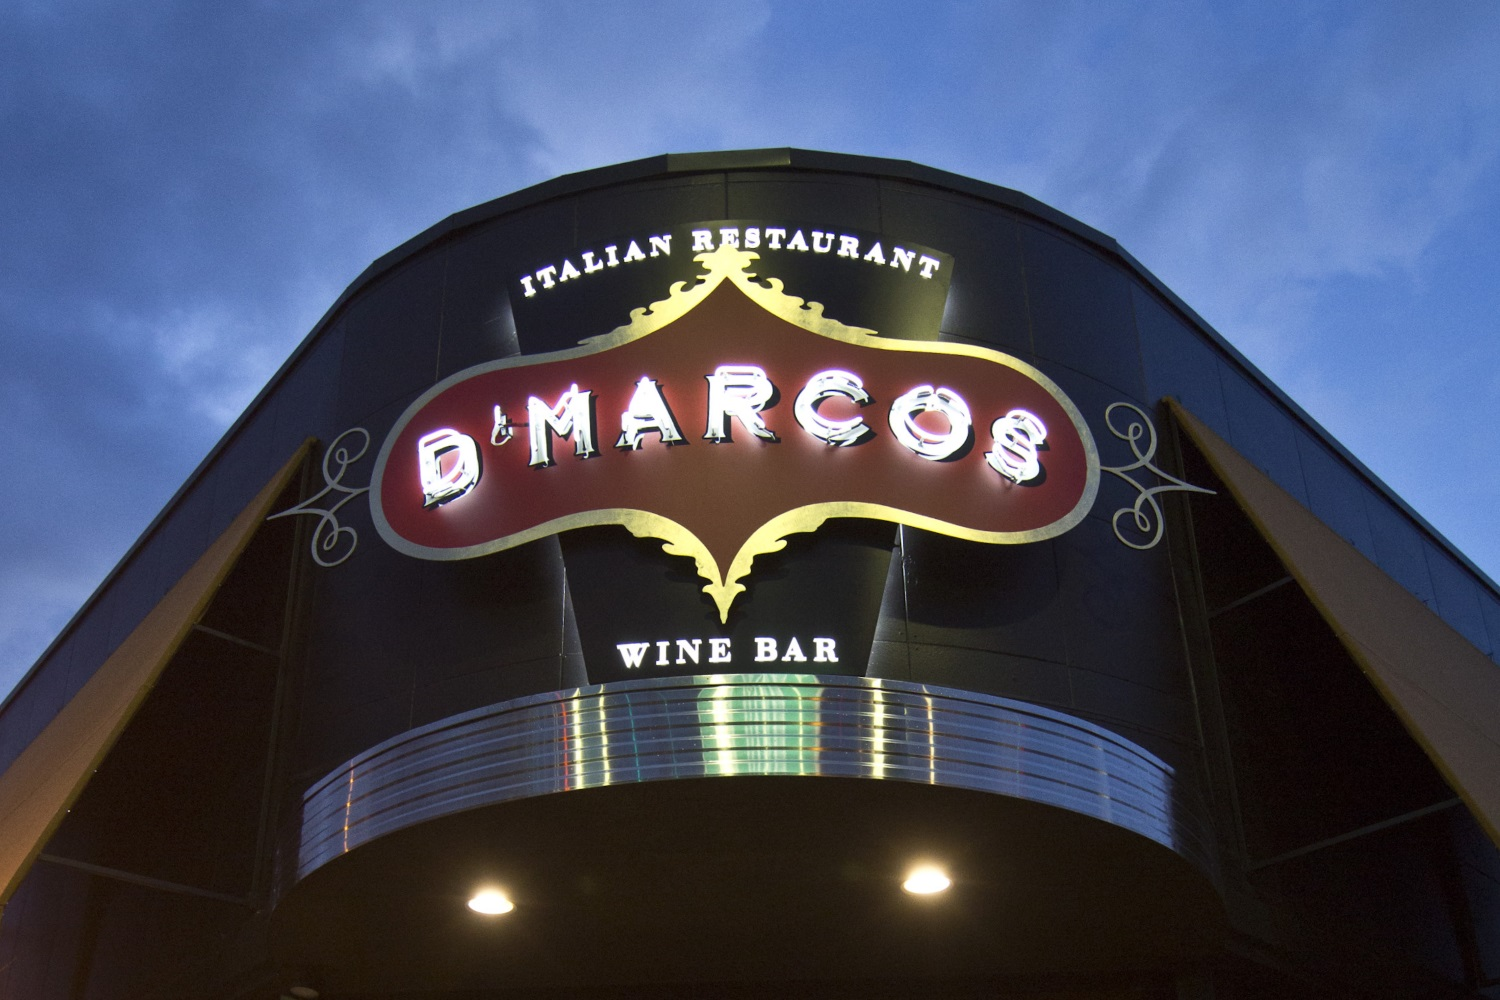 D'Marco Italian Restaurant and Wine Bar Exterior